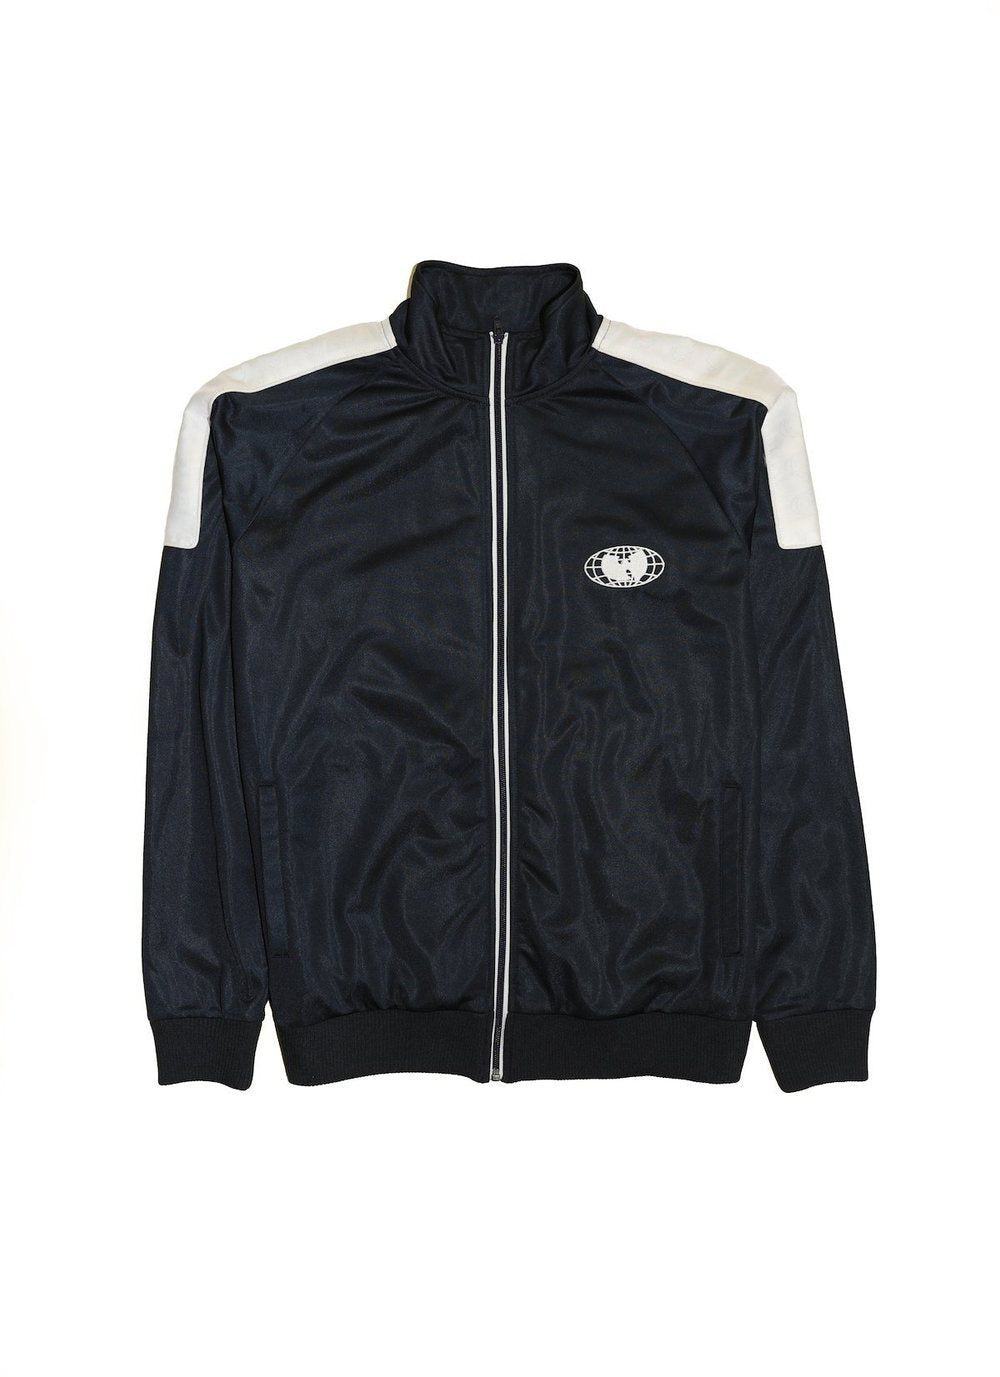 Wu Wear - Re United Men's Track Jacket, Navy/White